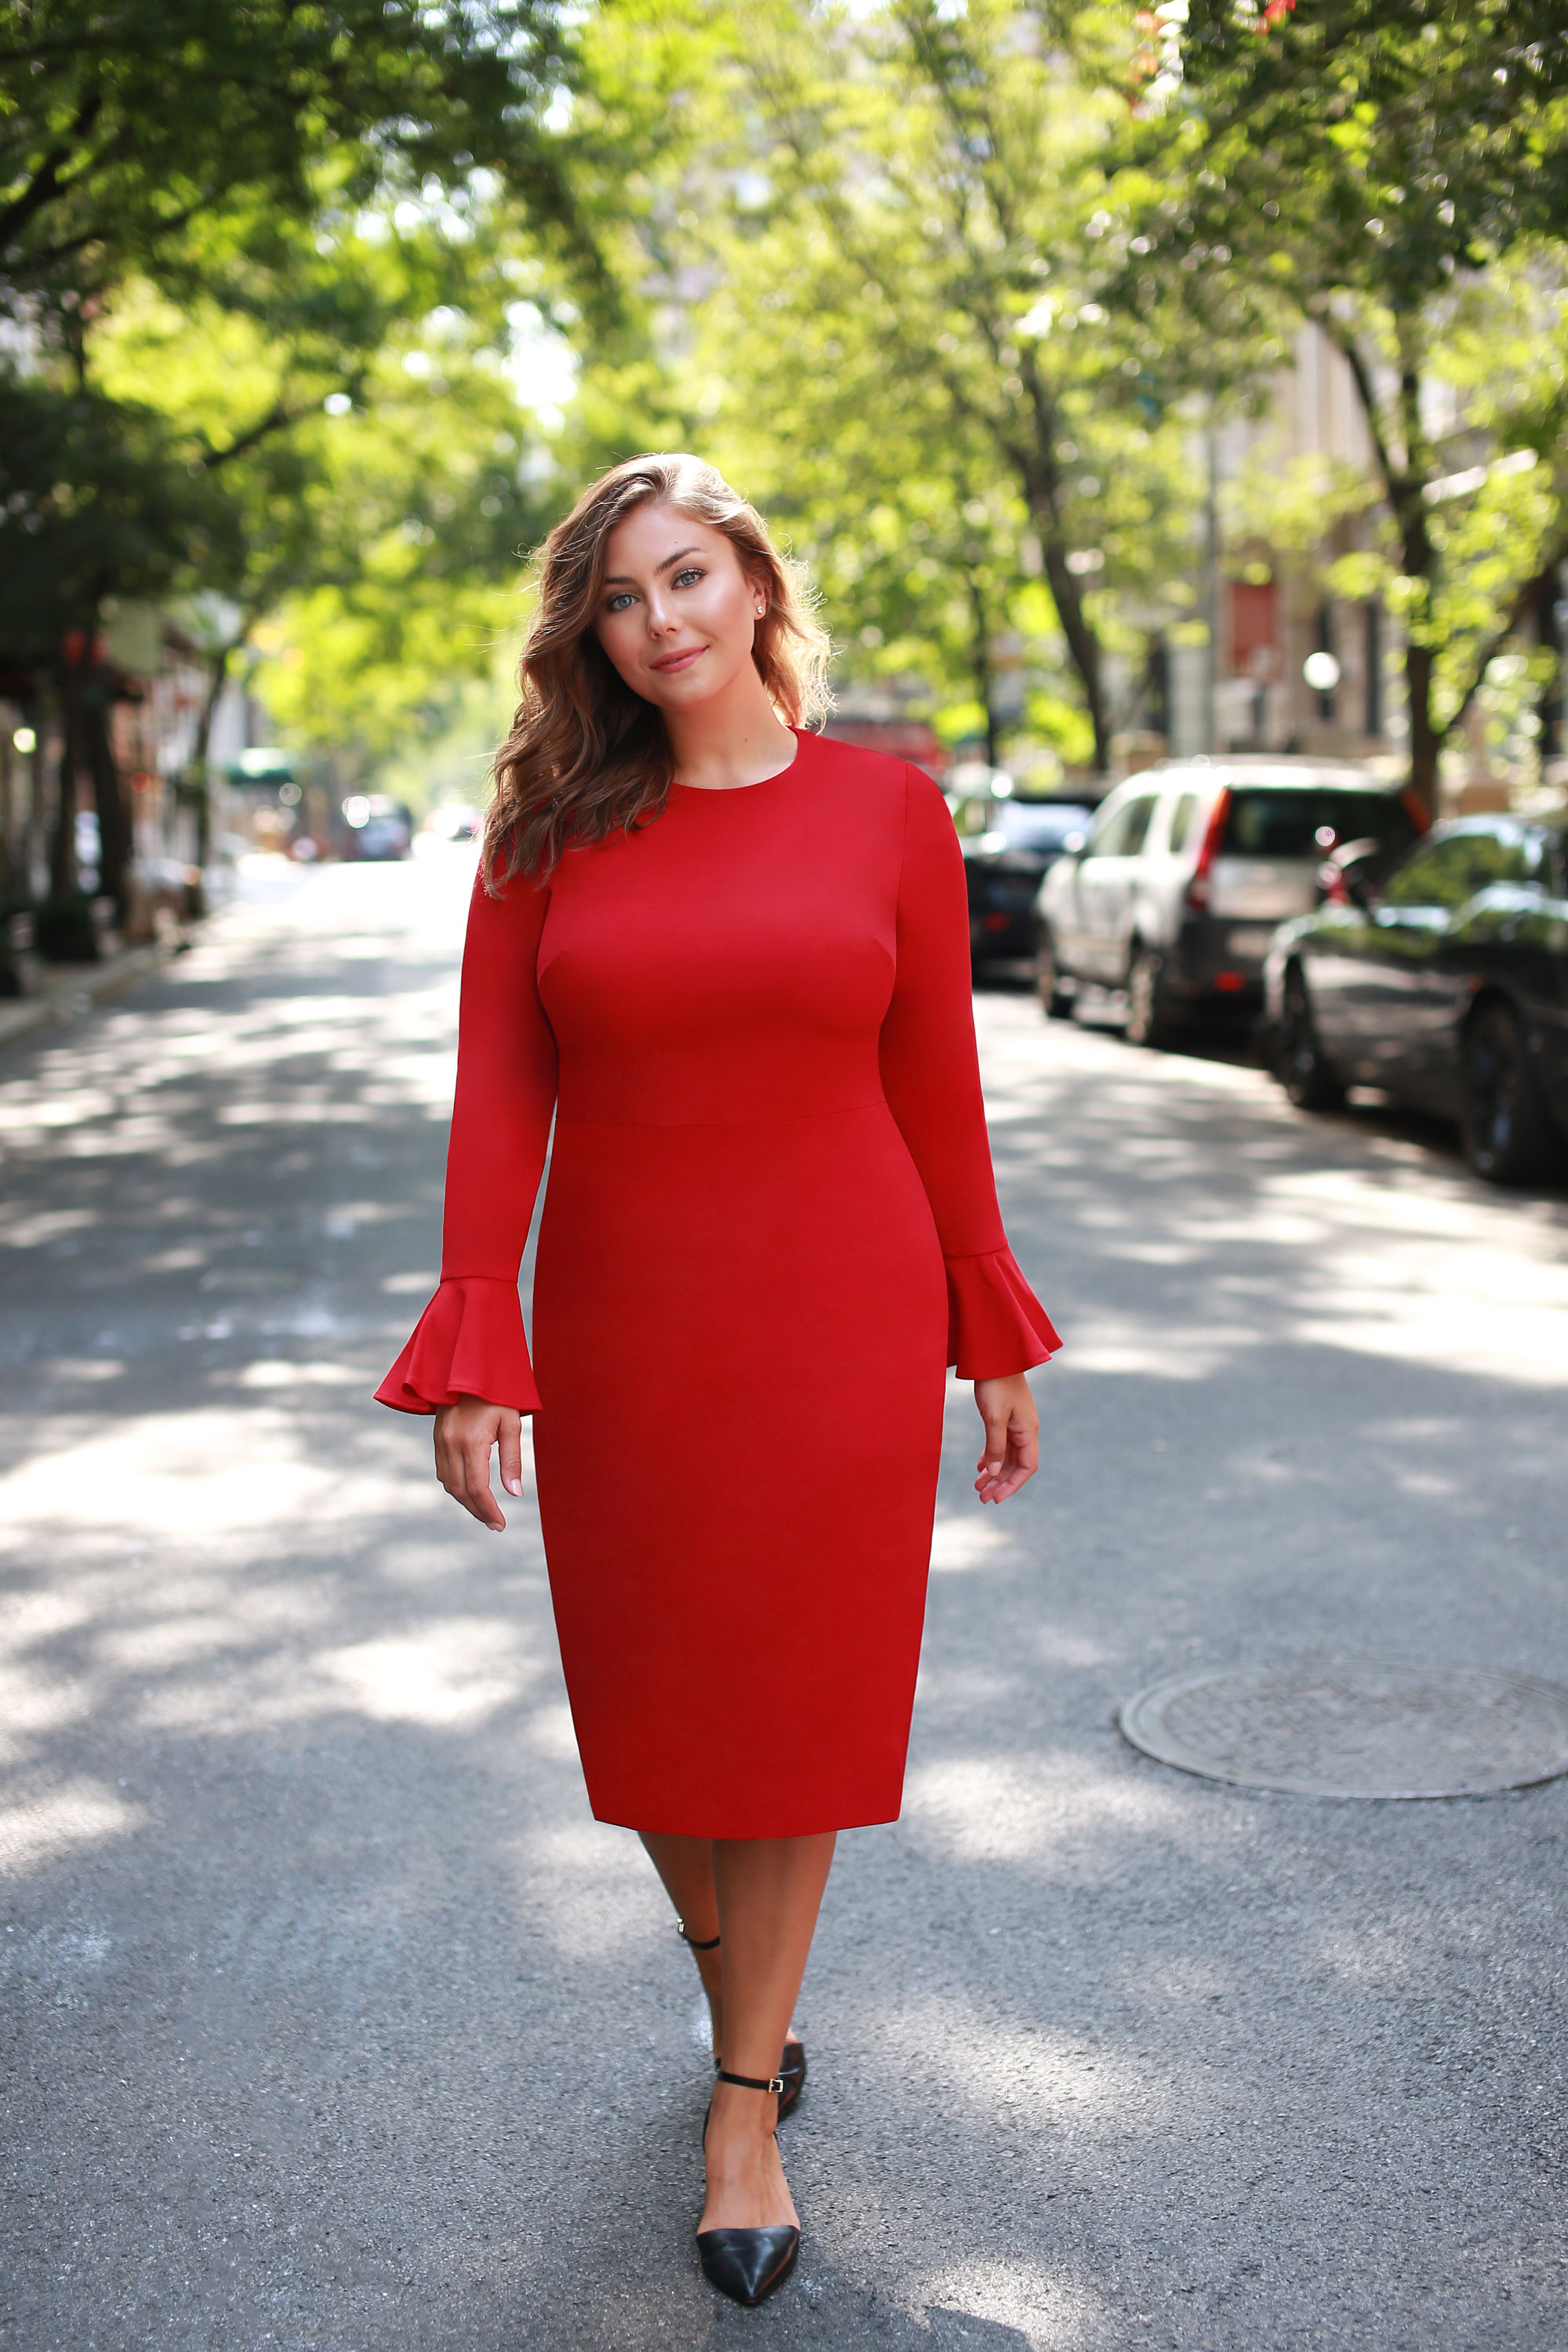 5. Office Occasion - The solution when you're looking for a timeless- but not boring- cut. This deep, apple red tone and ruffle sleeve details draws attention in all the right (professionally appropriate) ways and will sure to be a party favorite.